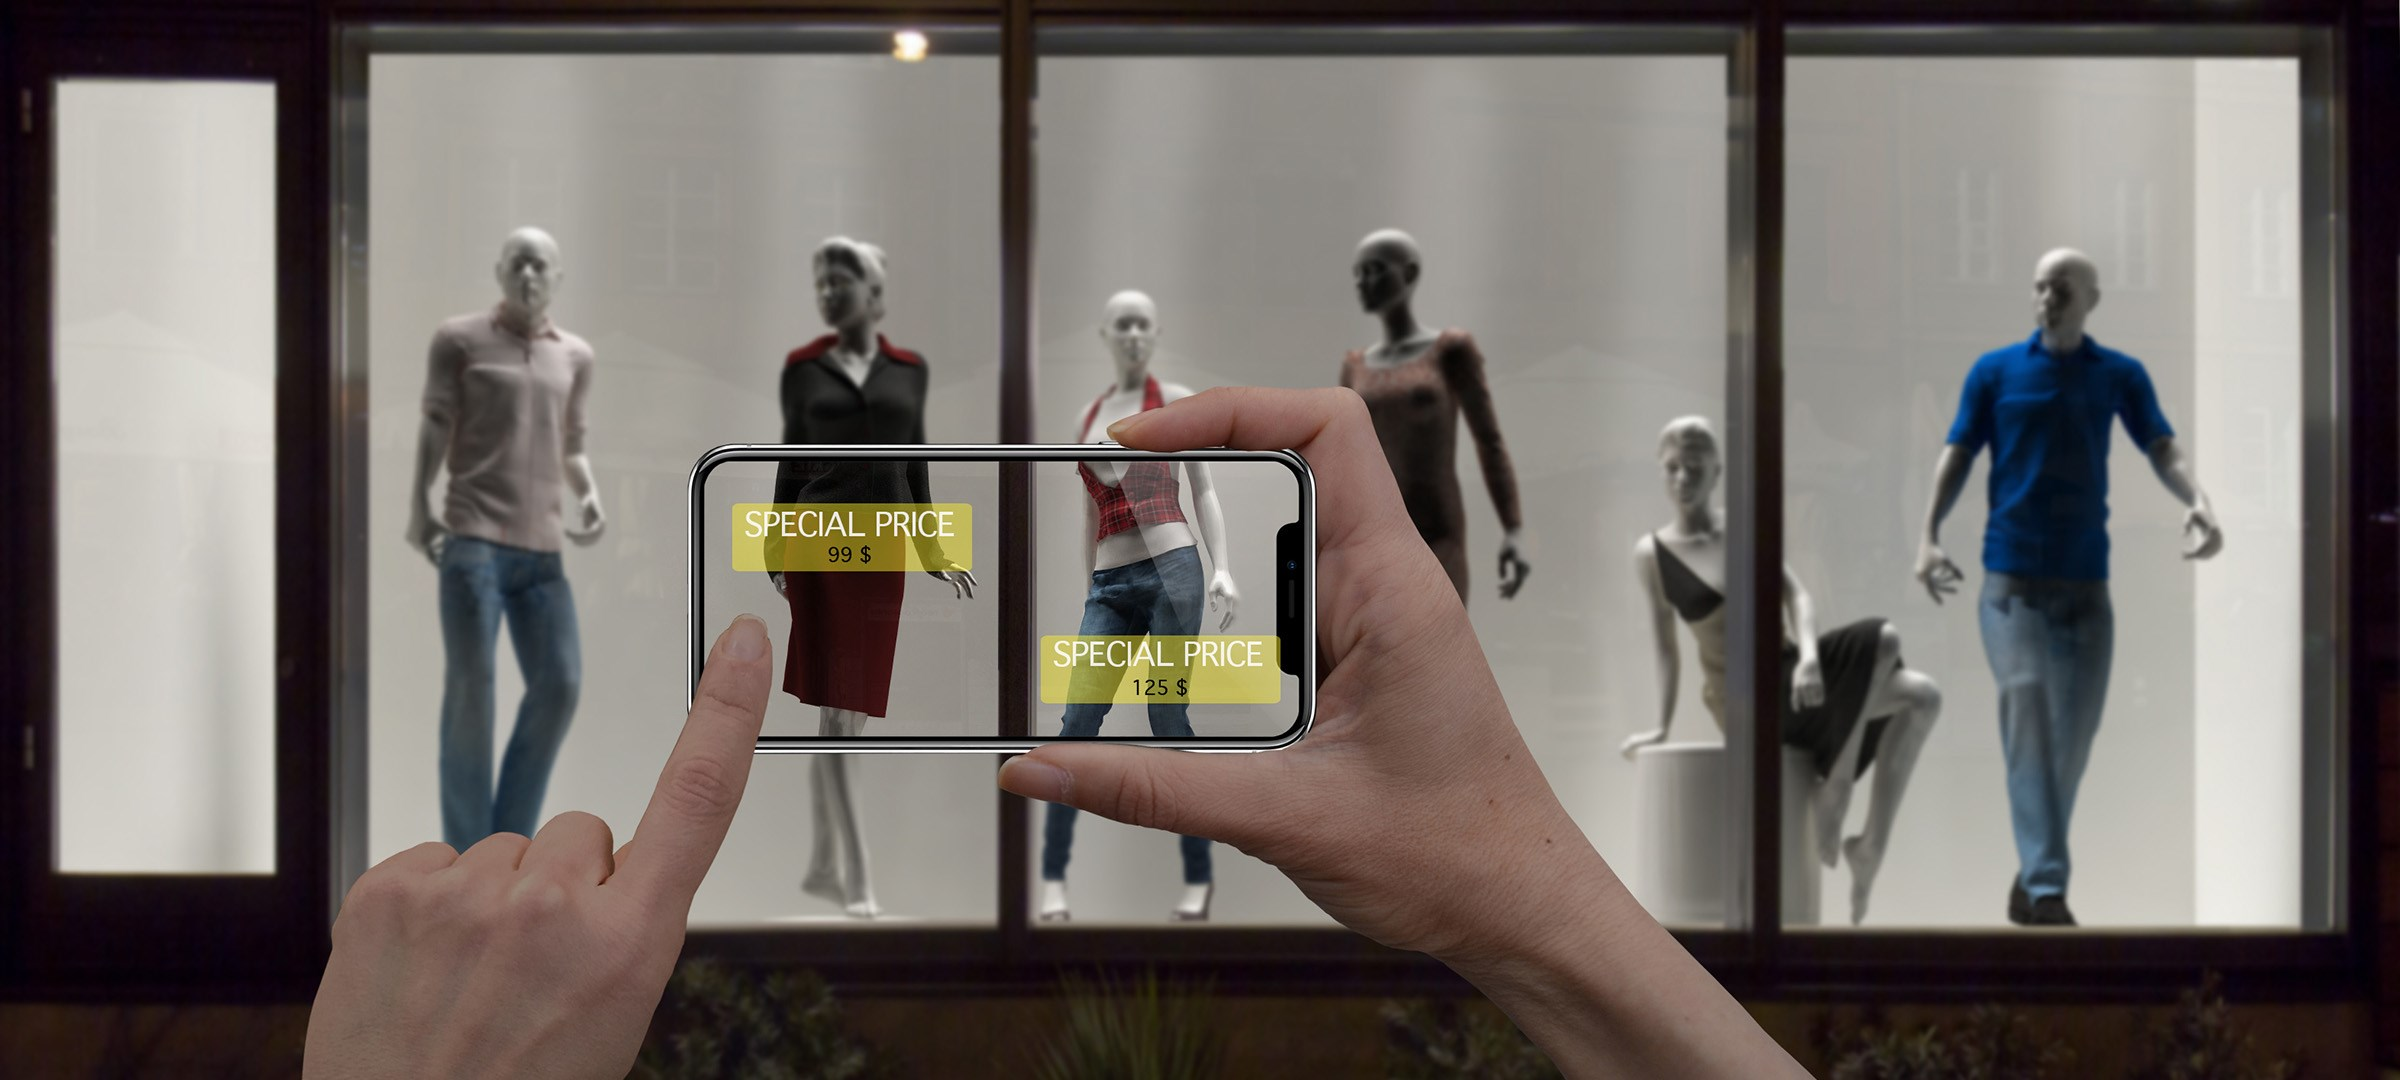 Building an Augmented Reality Demo for Retail